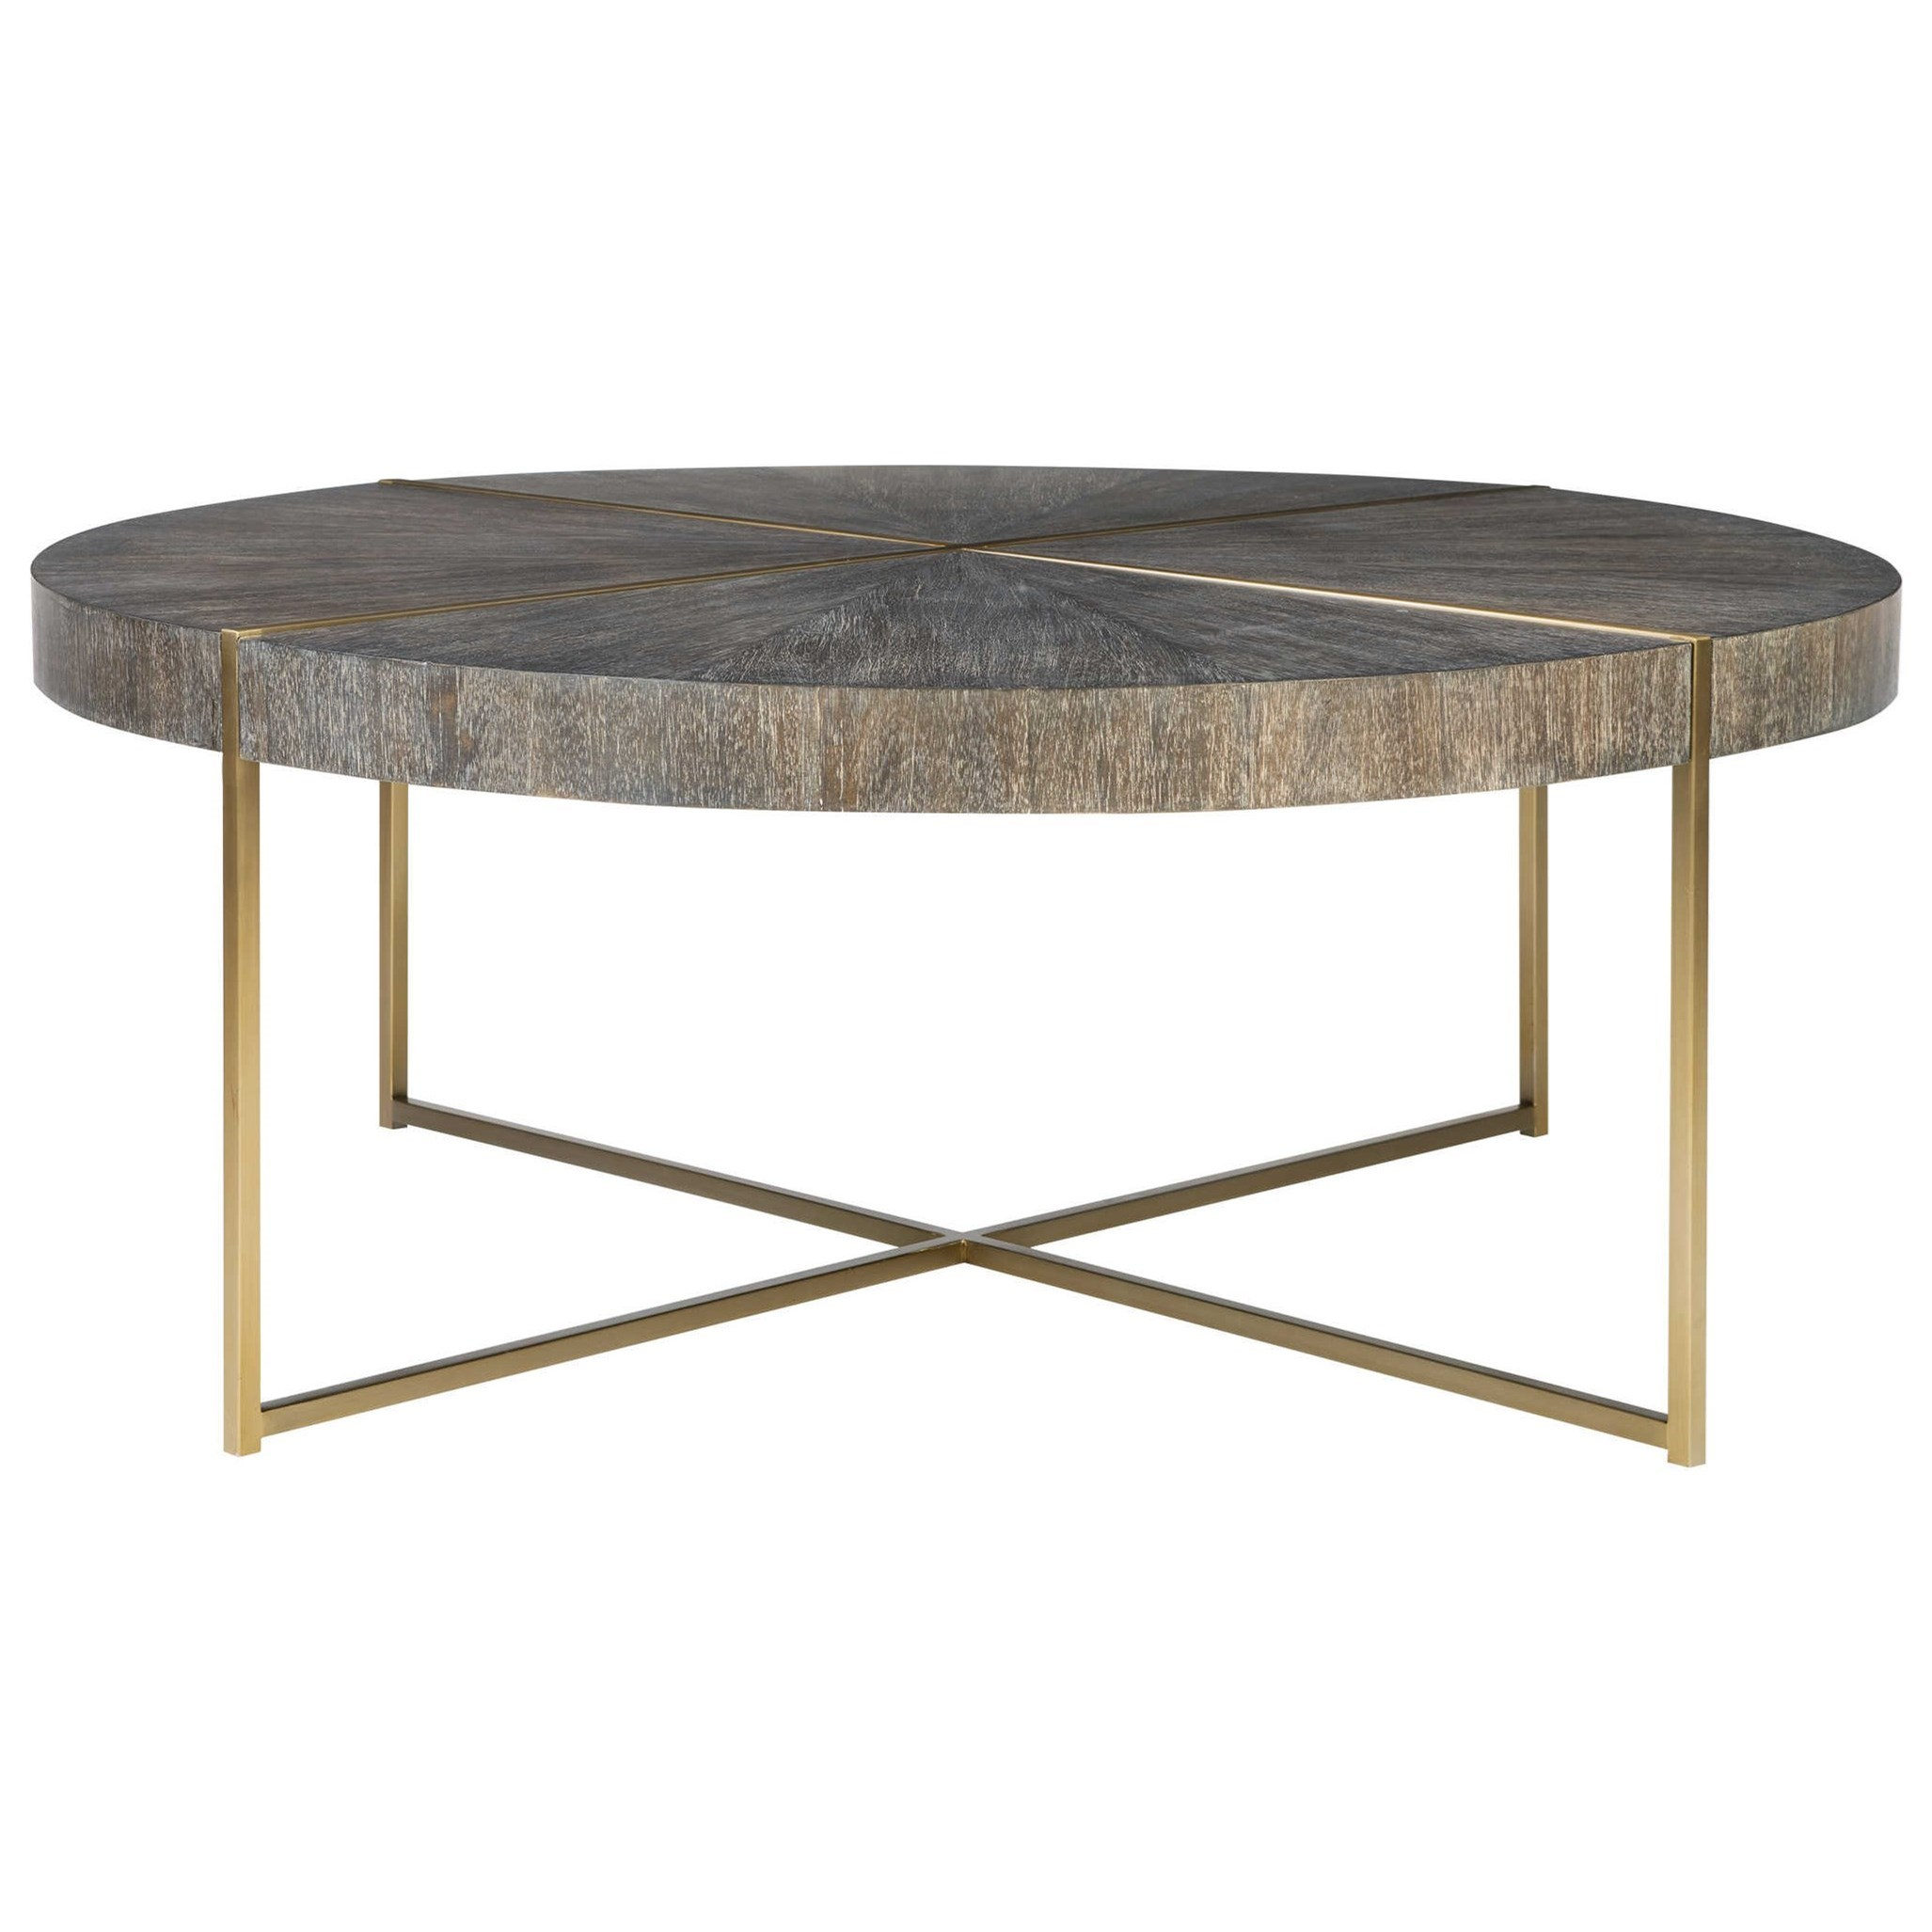 Accent Furniture - Occasional Tables Taja Round Coffee Table by Uttermost at Upper Room Home Furnishings